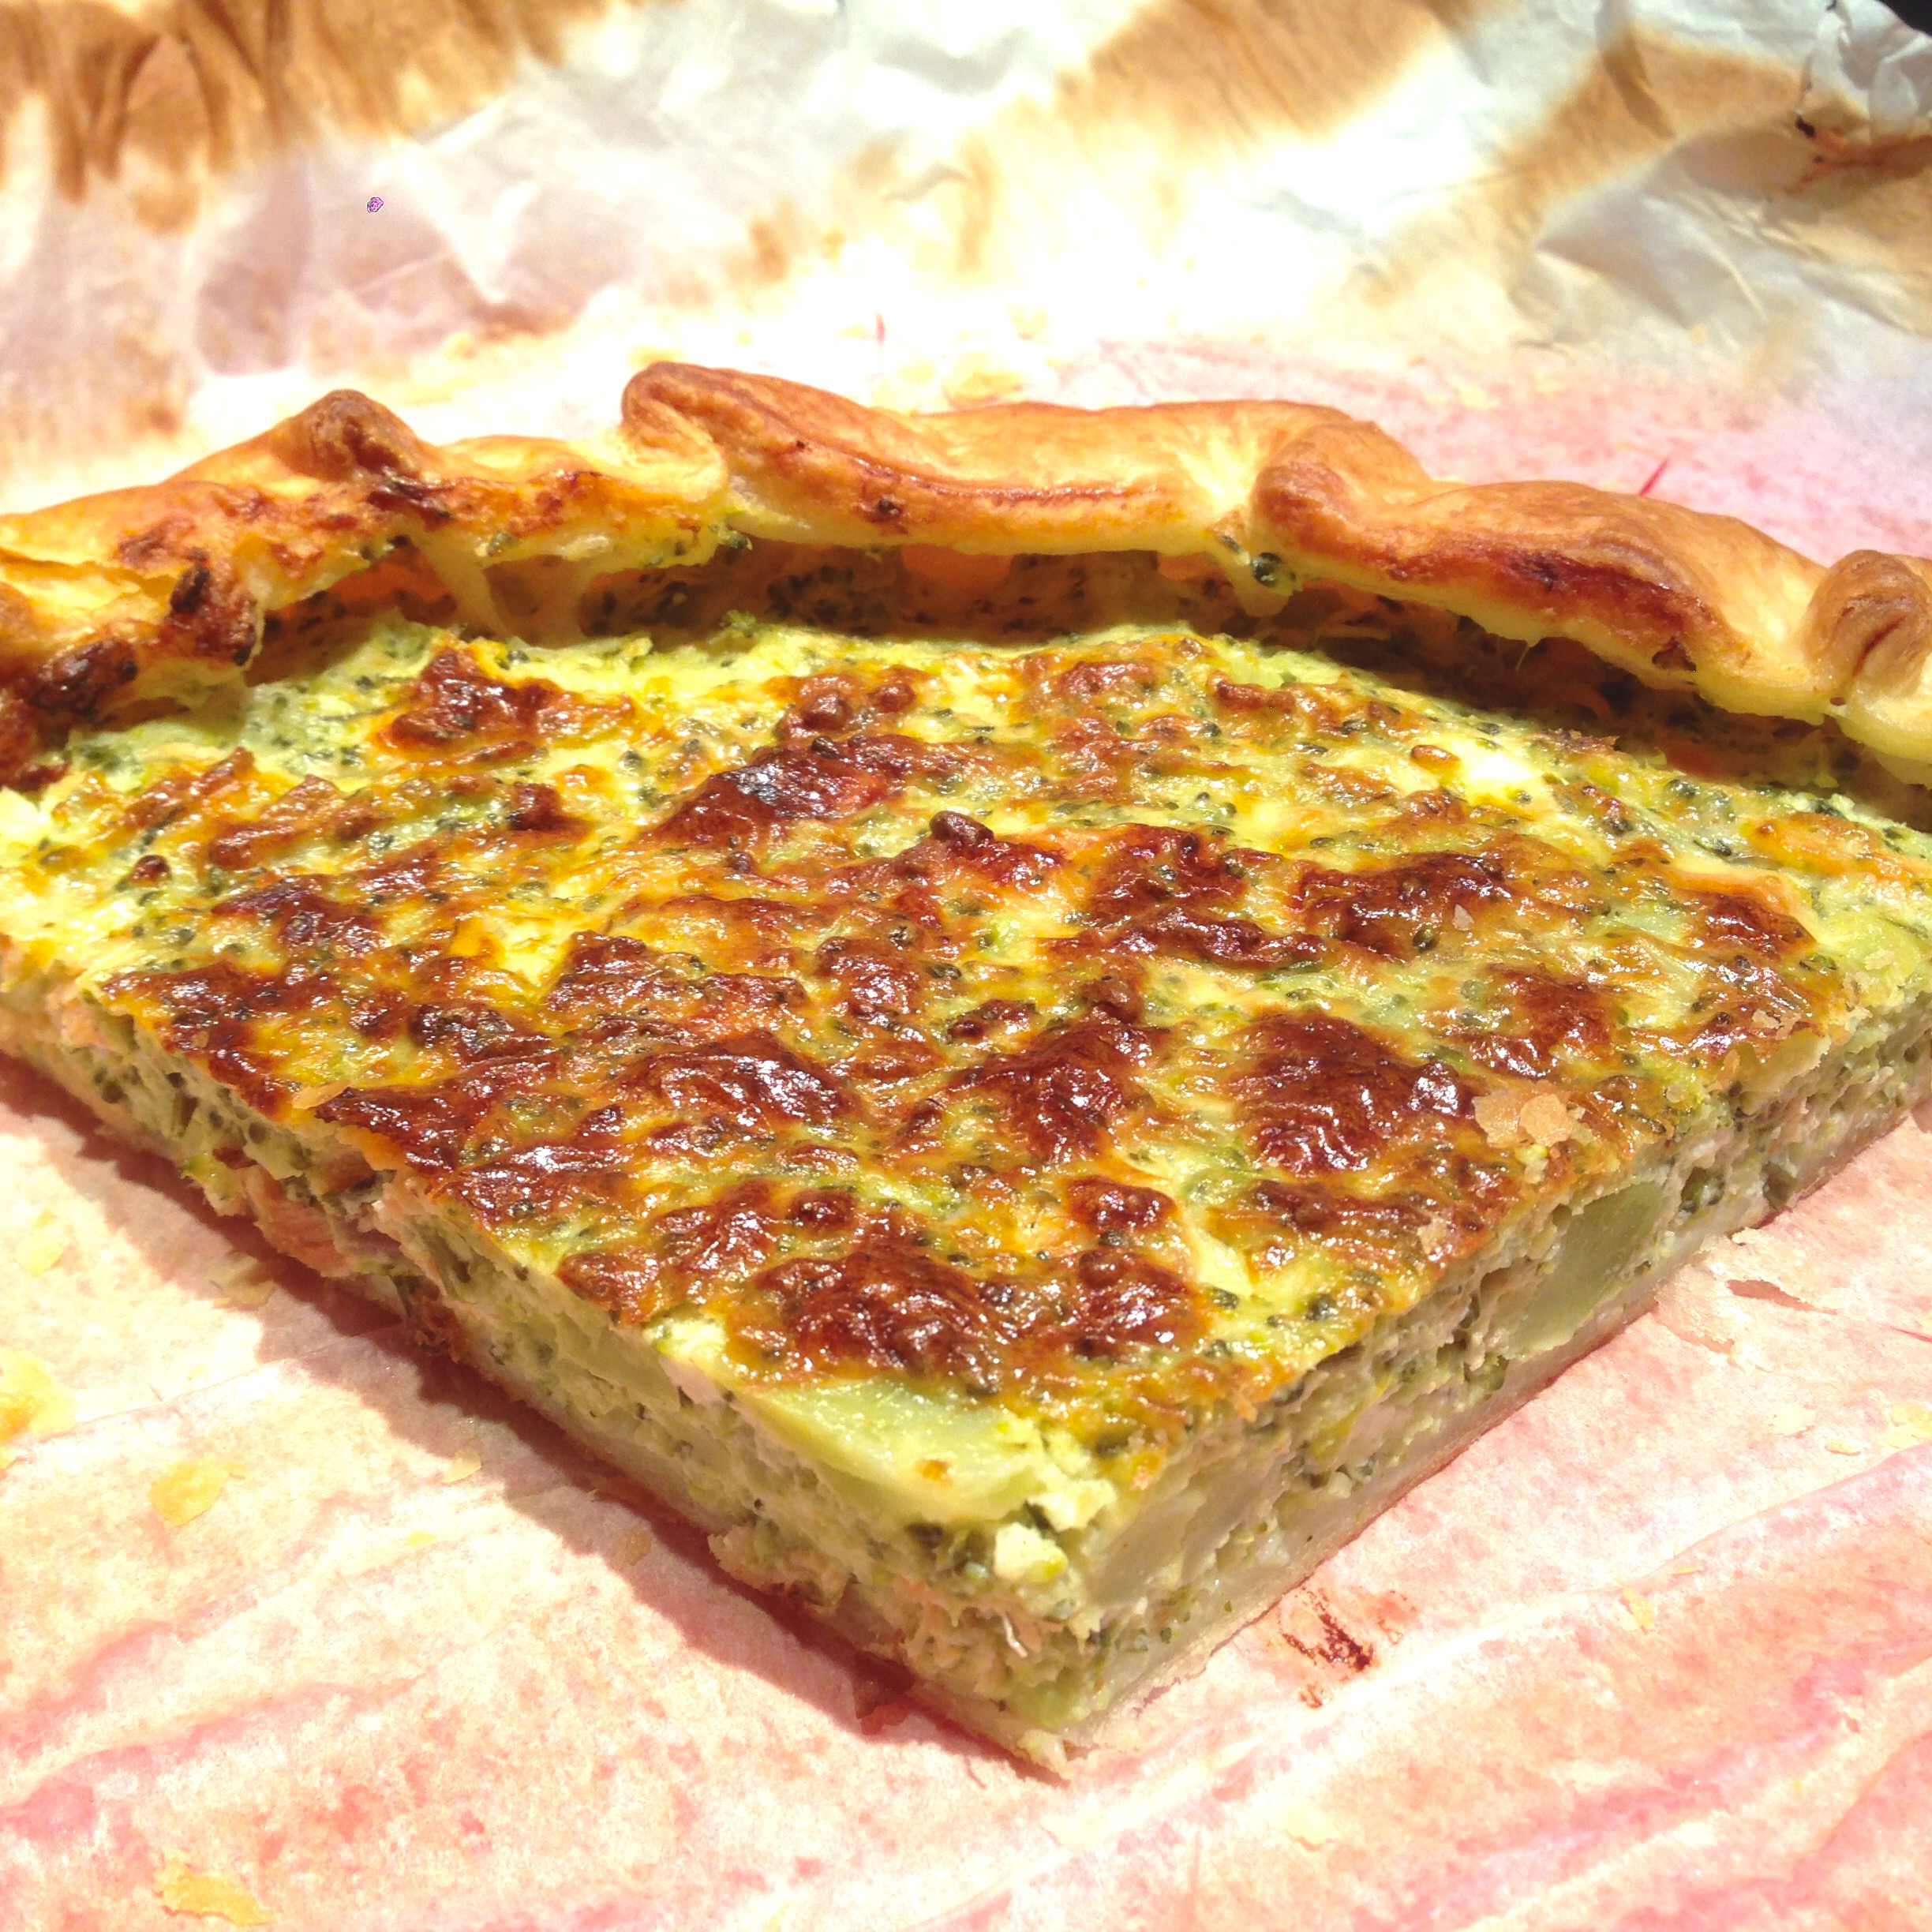 Quiche di Broccoli, Salmone affumicato e Robiola - Broccoli, Salmon and Soft Cheese Quiche